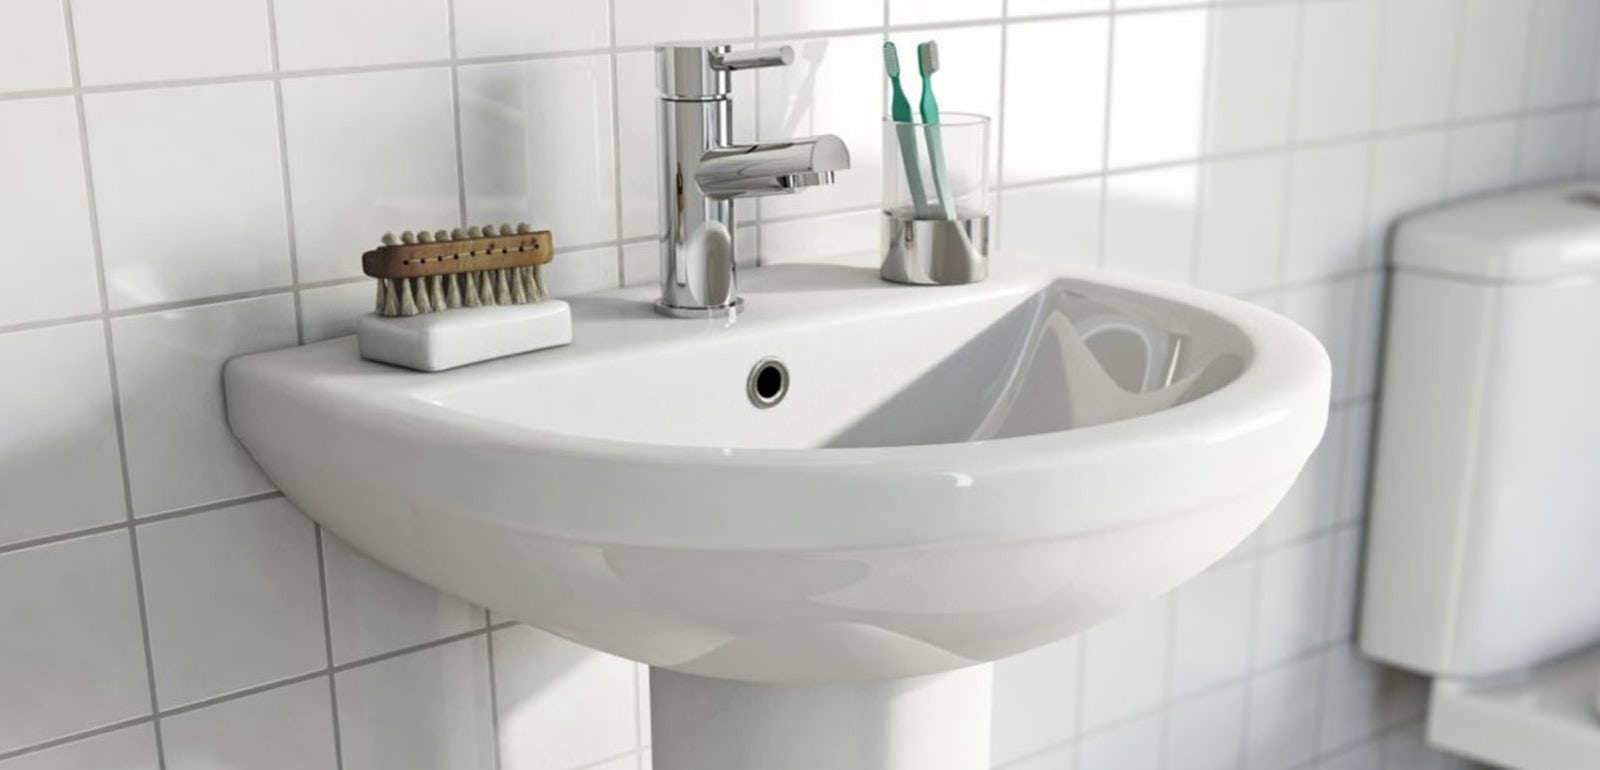 How to fit a pedestal basin